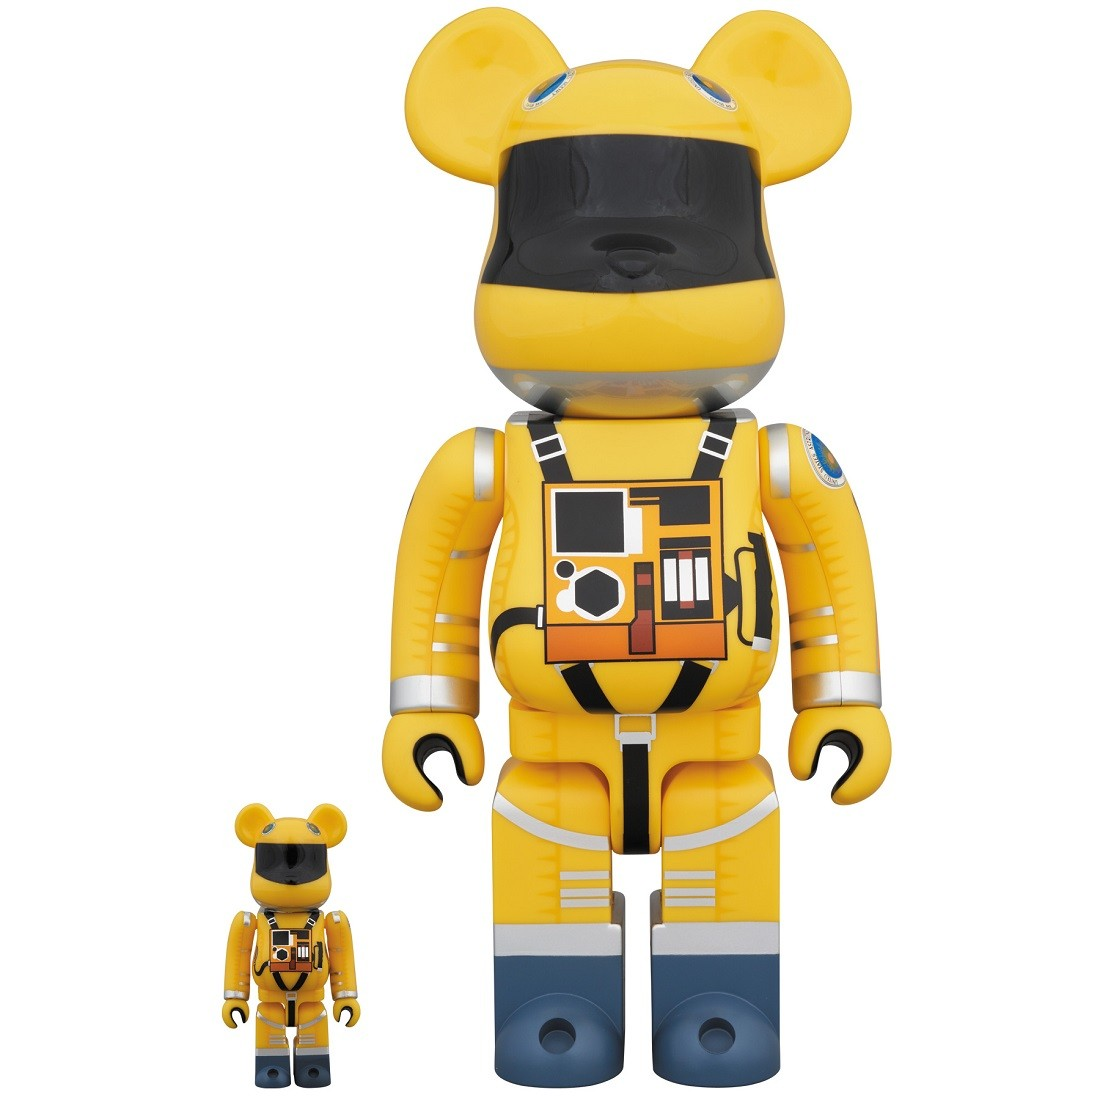 PREORDER - Medicom 2001 A Space Odyssey Space Suit Yellow Ver. 100% 400% Bearbrick Figure Set (yellow)